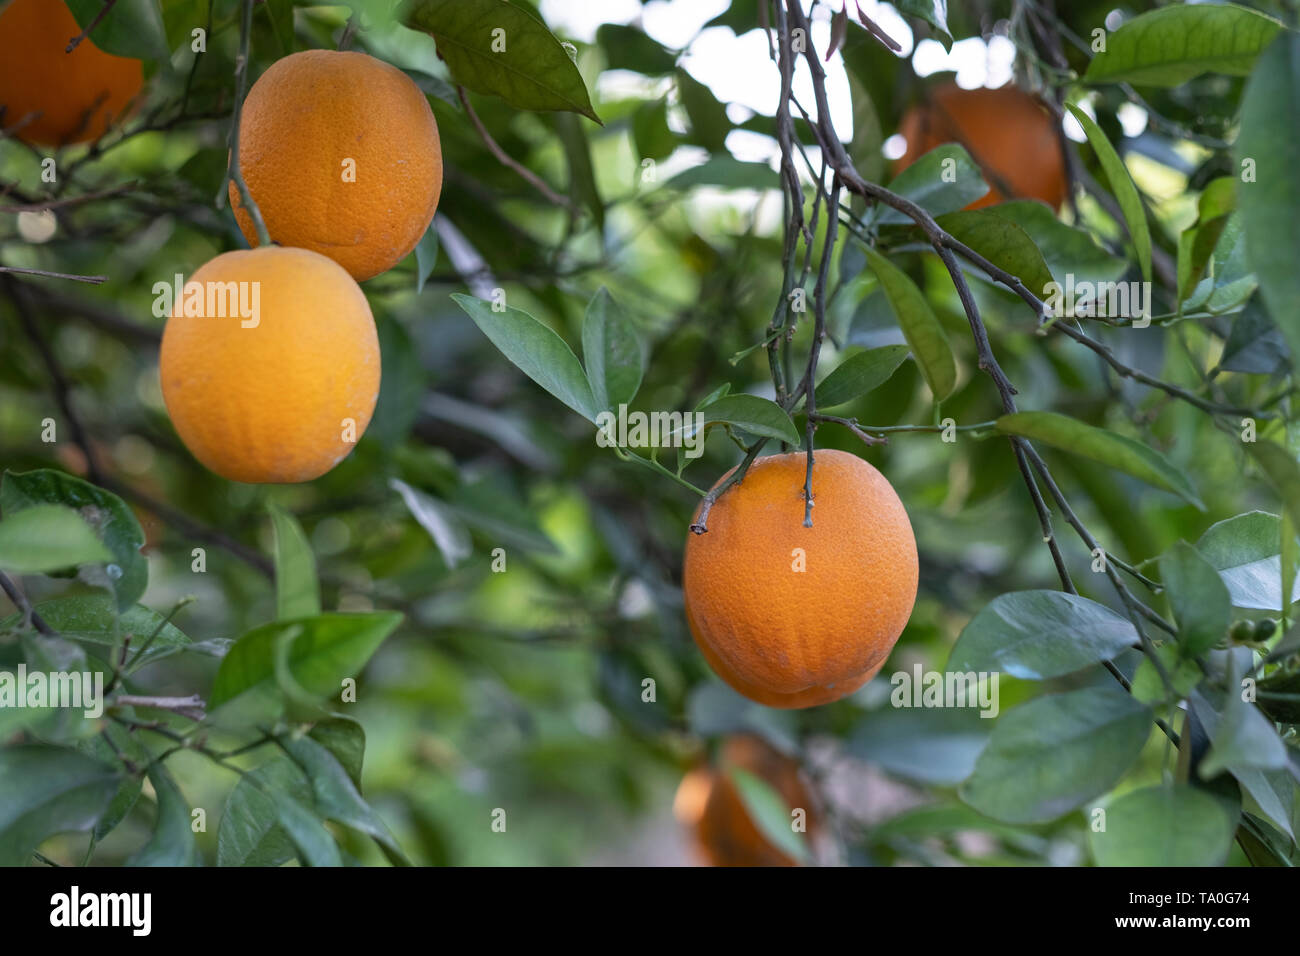 branches of an orange tree with some oranges - Stock Image